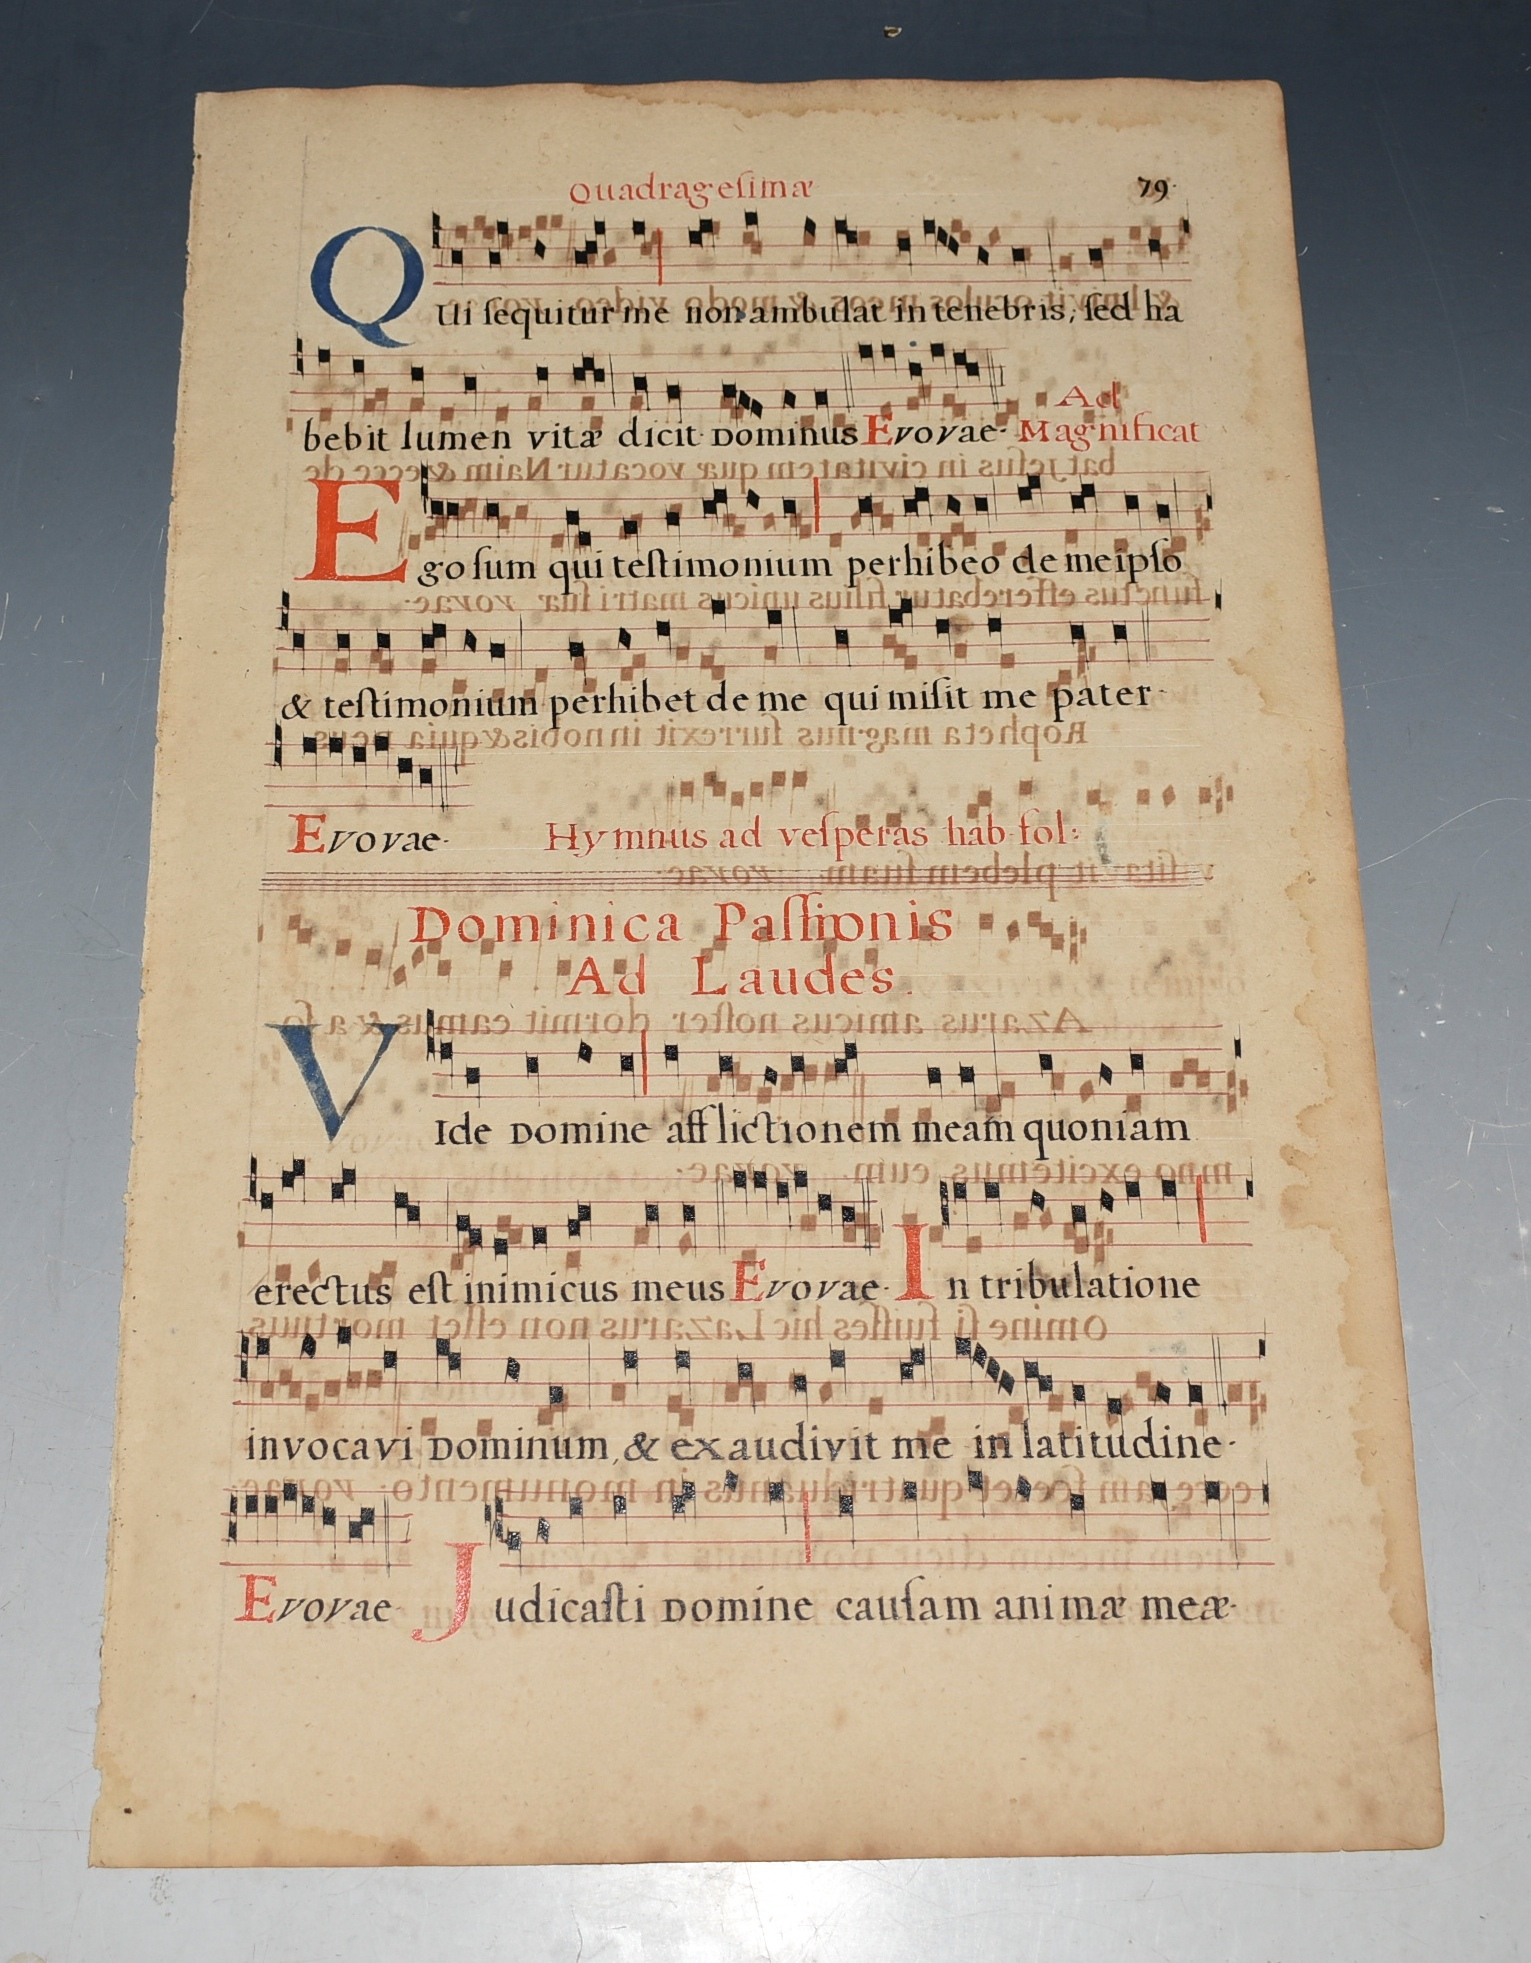 Image for Original ILLUMINATED Antiphon Music Sheet 1560 Parchment Leaf